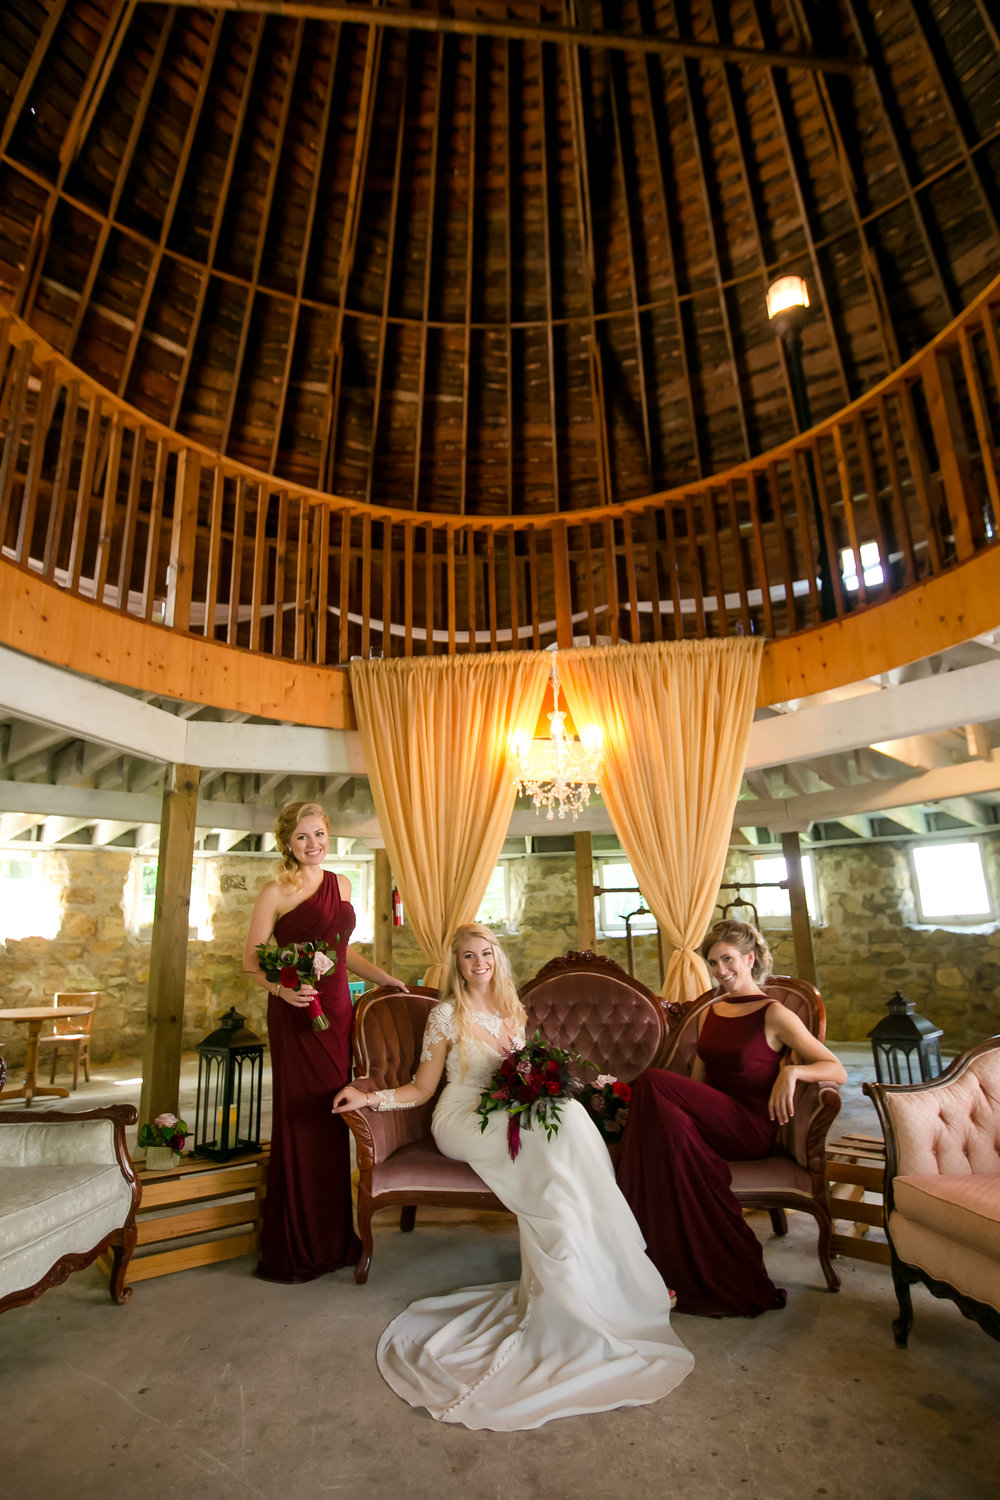 Round barn farm style shoot with bride and her girls